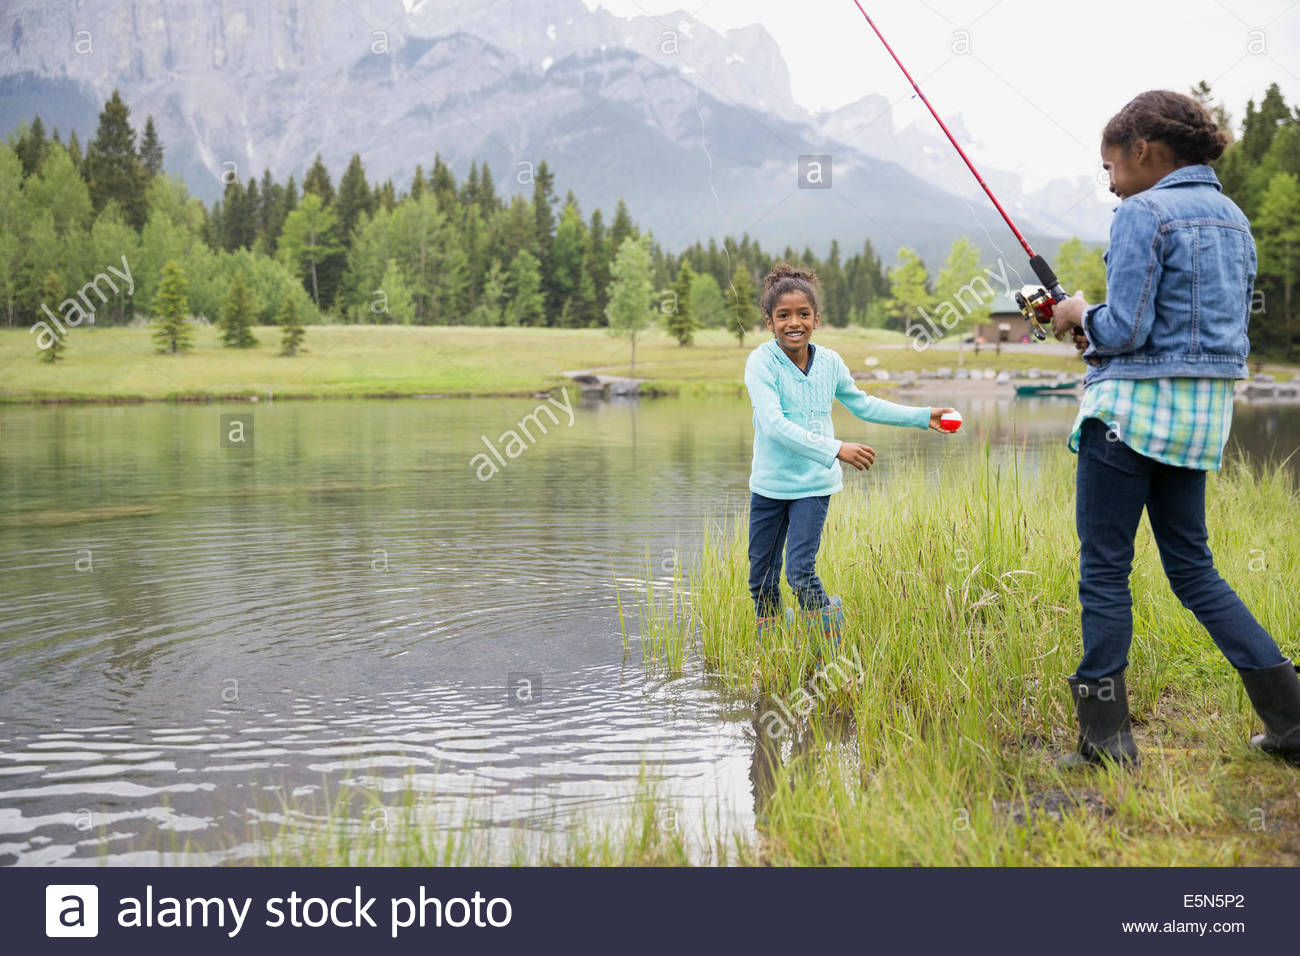 Sisters with fishing rods fishing at lakeside - Stock Image